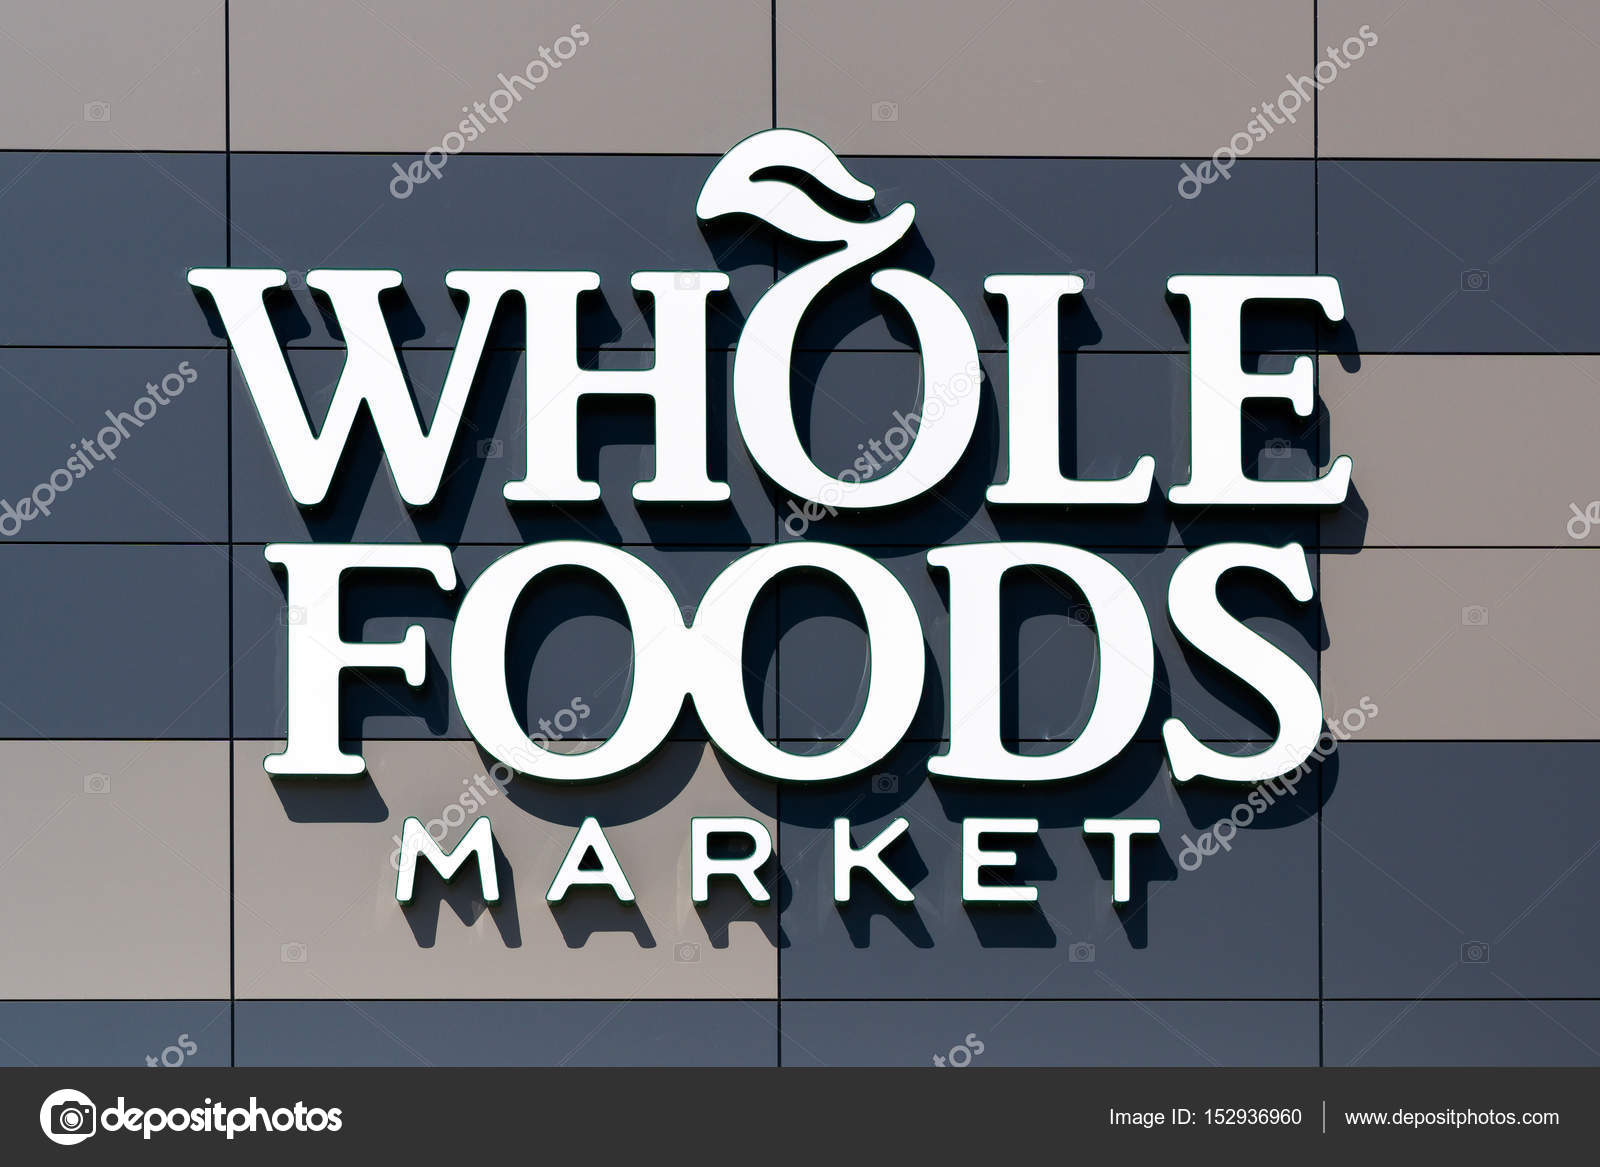 Whole Foods Market Exterior And Logo Stock Photo